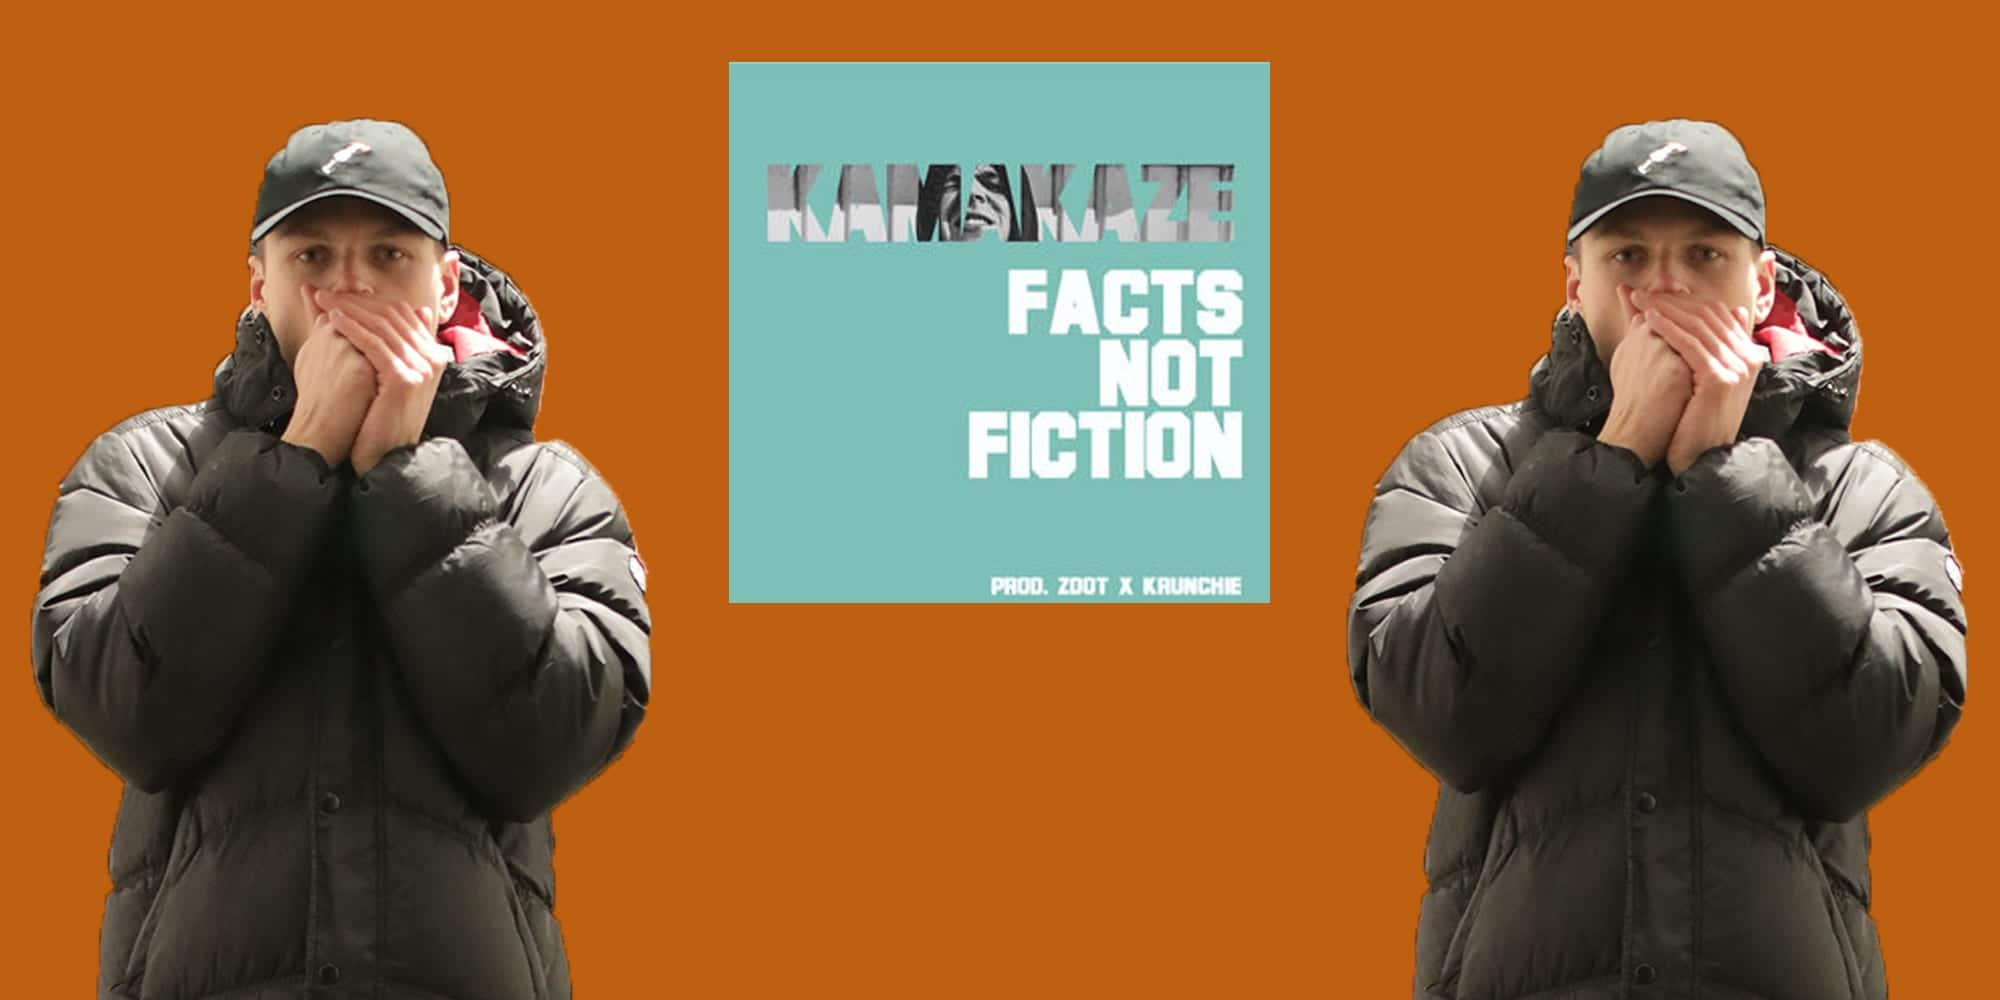 kamakaze facts not fiction